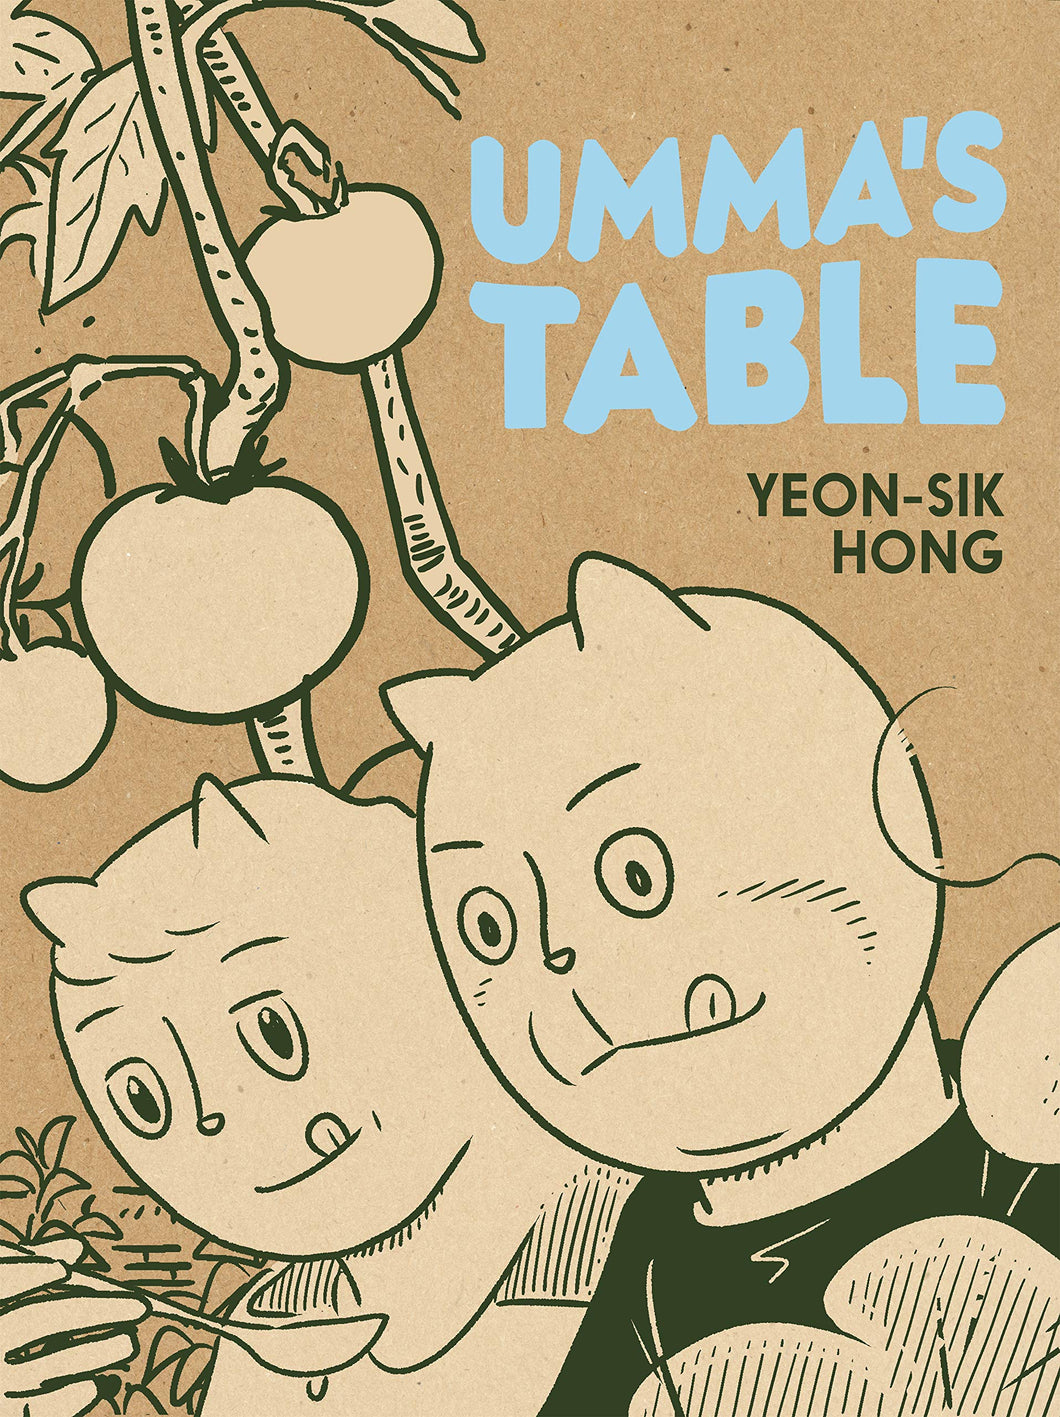 Umma's Table by Yeon-sik Hong